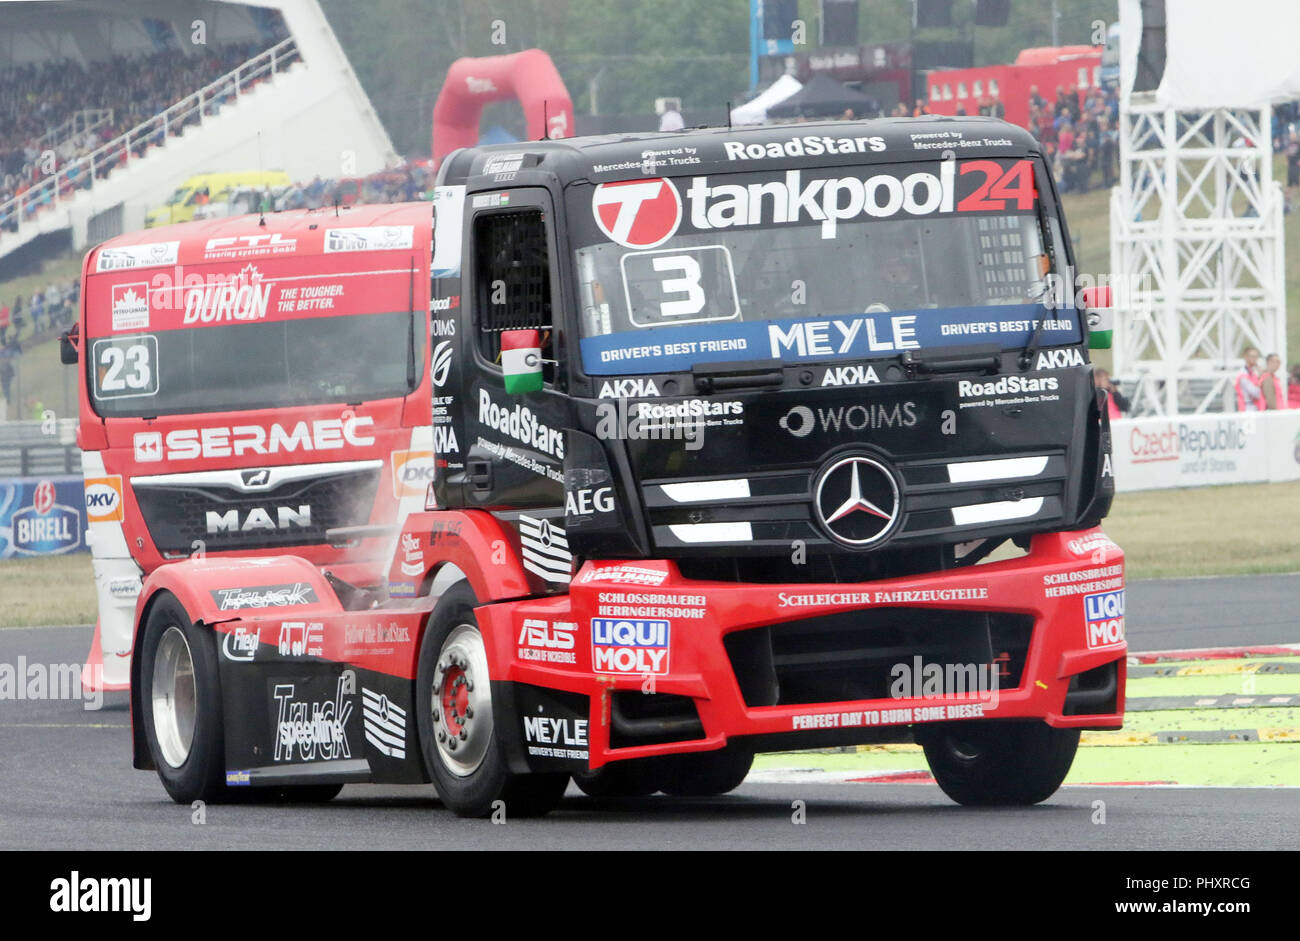 hight resolution of  2018 most czechy third race in front norbert kiss hun mercedes benz tankpool 24 racing fia european truck racing championship 2018